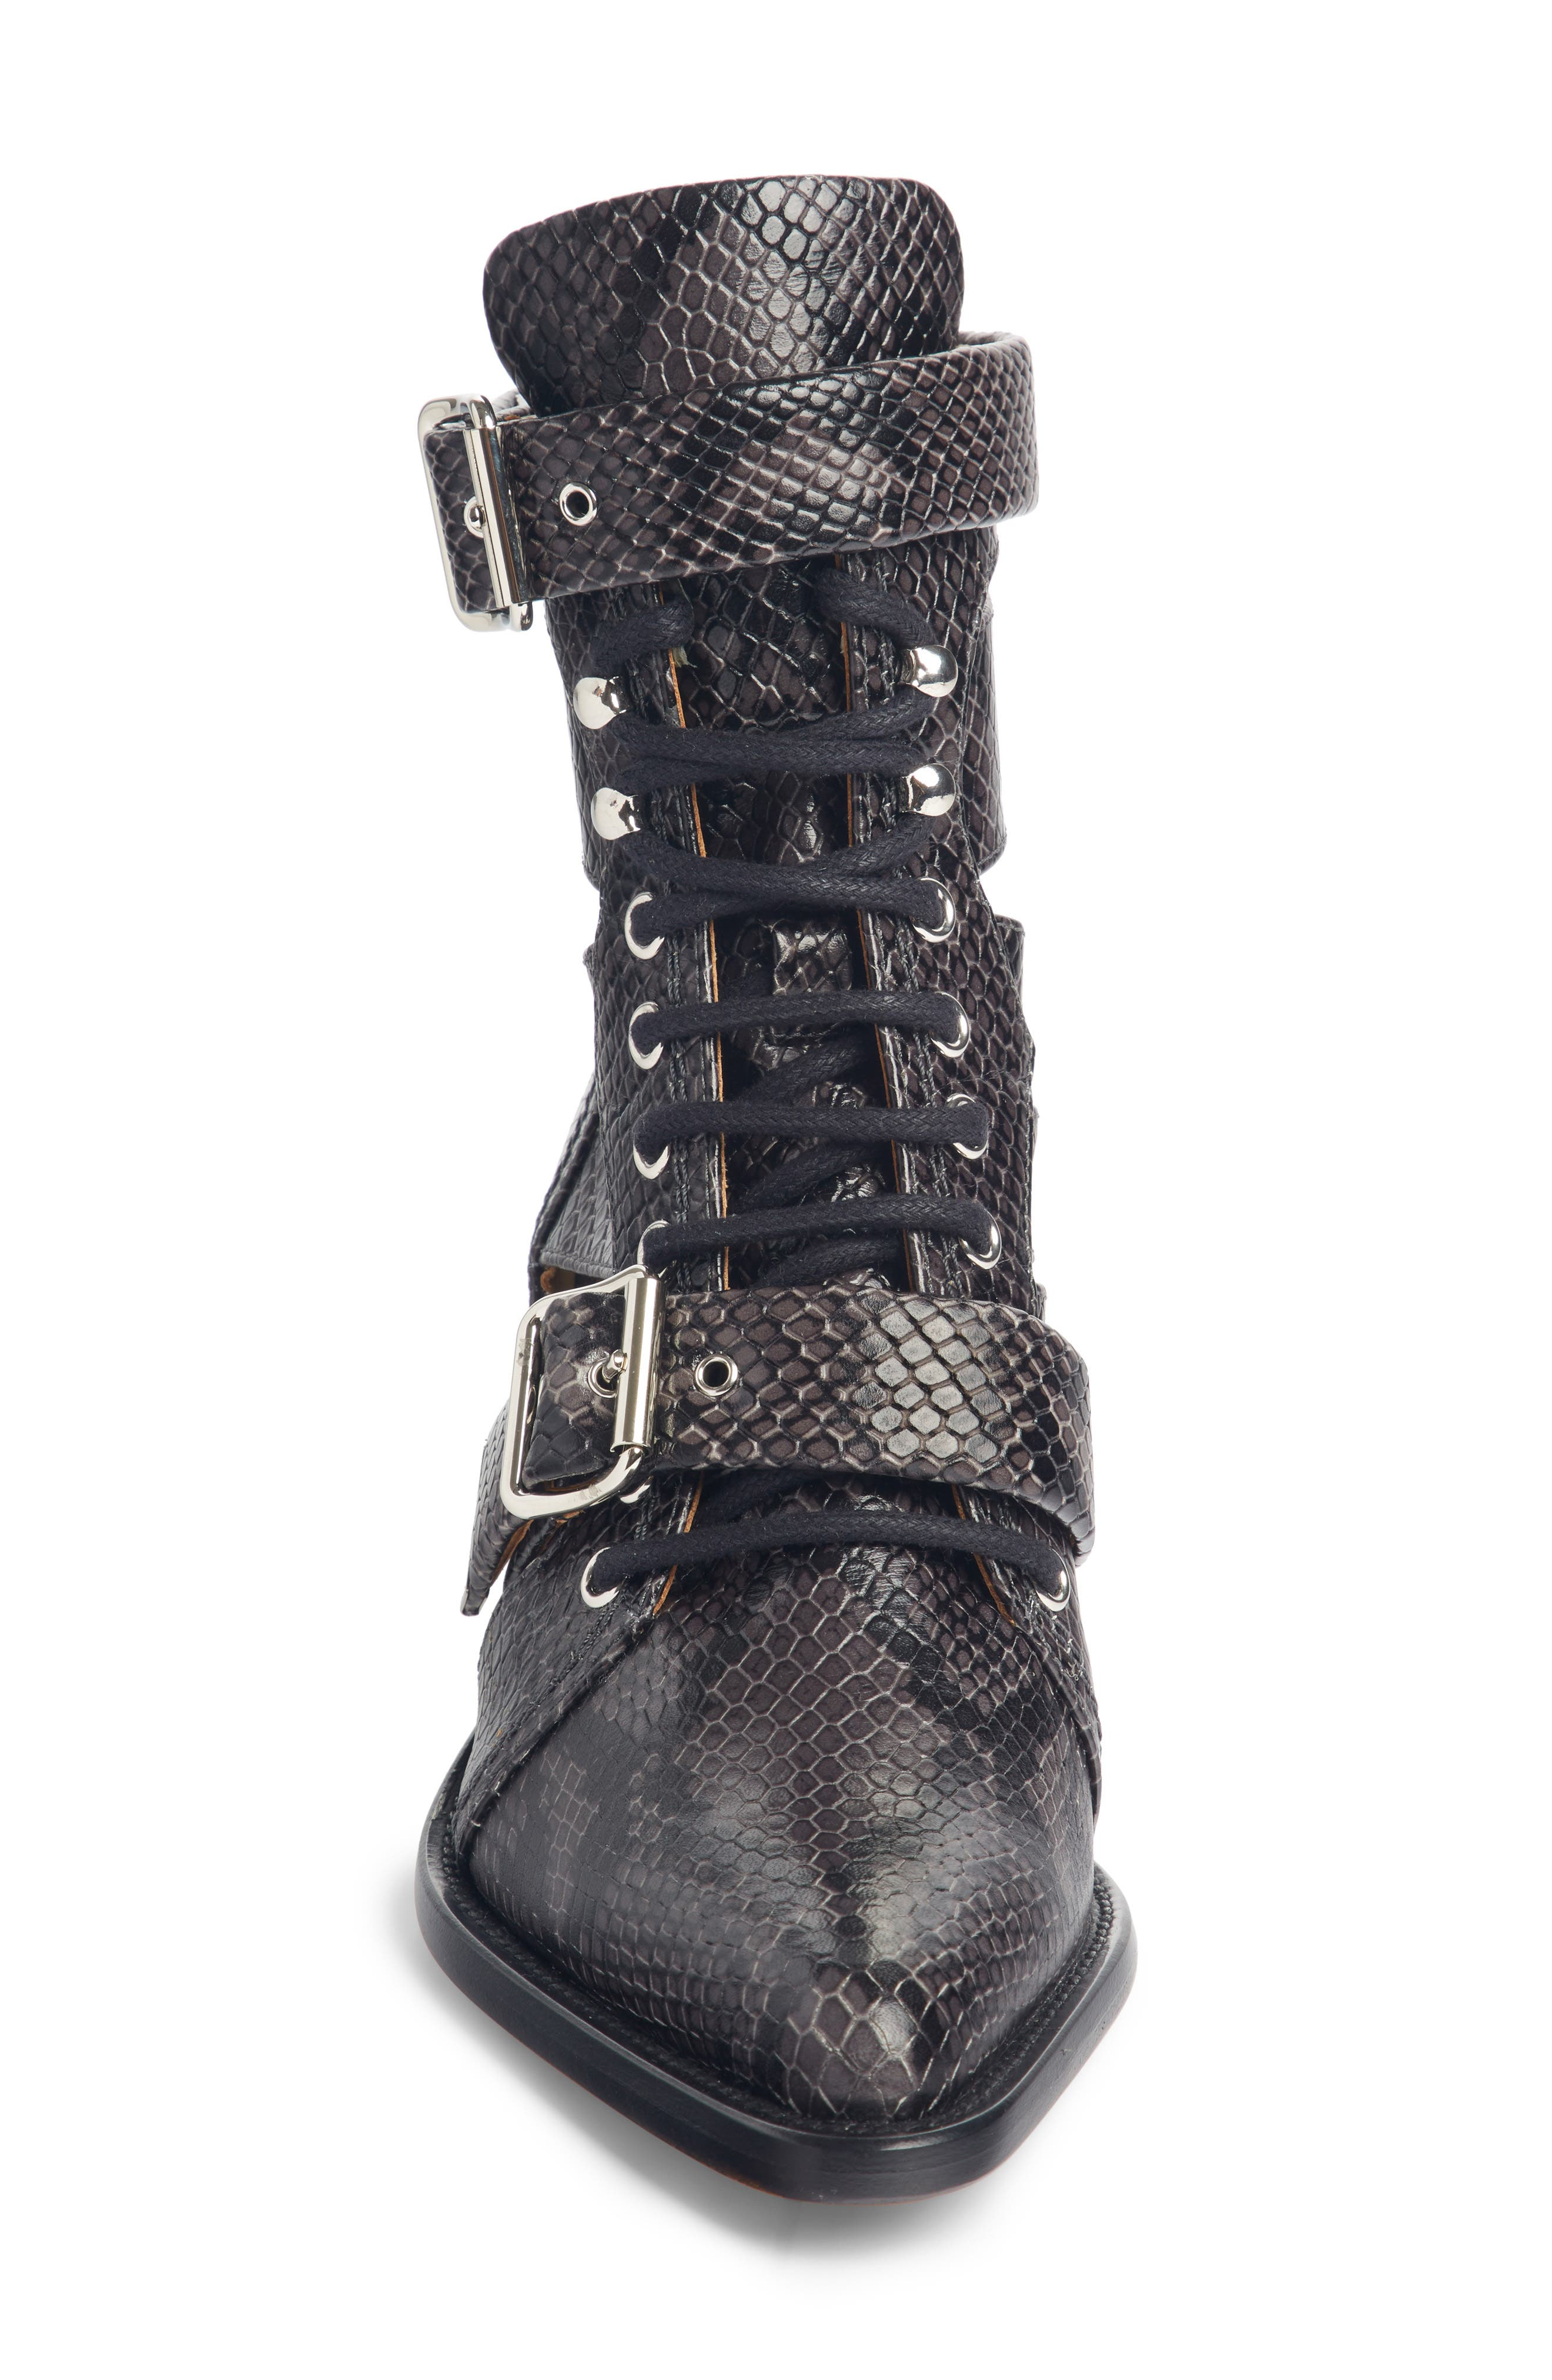 CHLOÉ, Rylee Caged Pointy Toe Boot, Alternate thumbnail 4, color, CHARCOAL BLACK